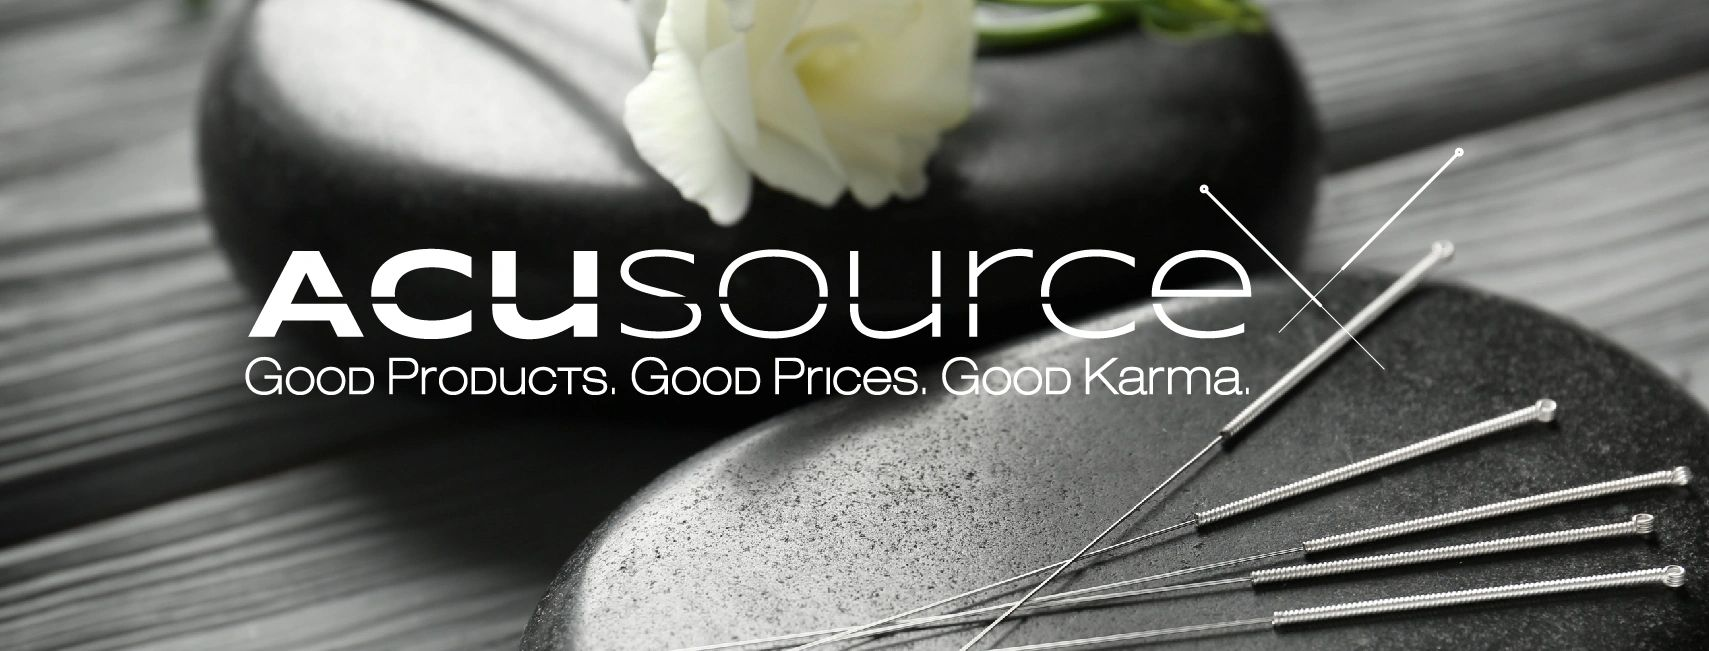 AcuSource. Premium Acupuncture needles for acupuncture, dry needling, chiropractic.